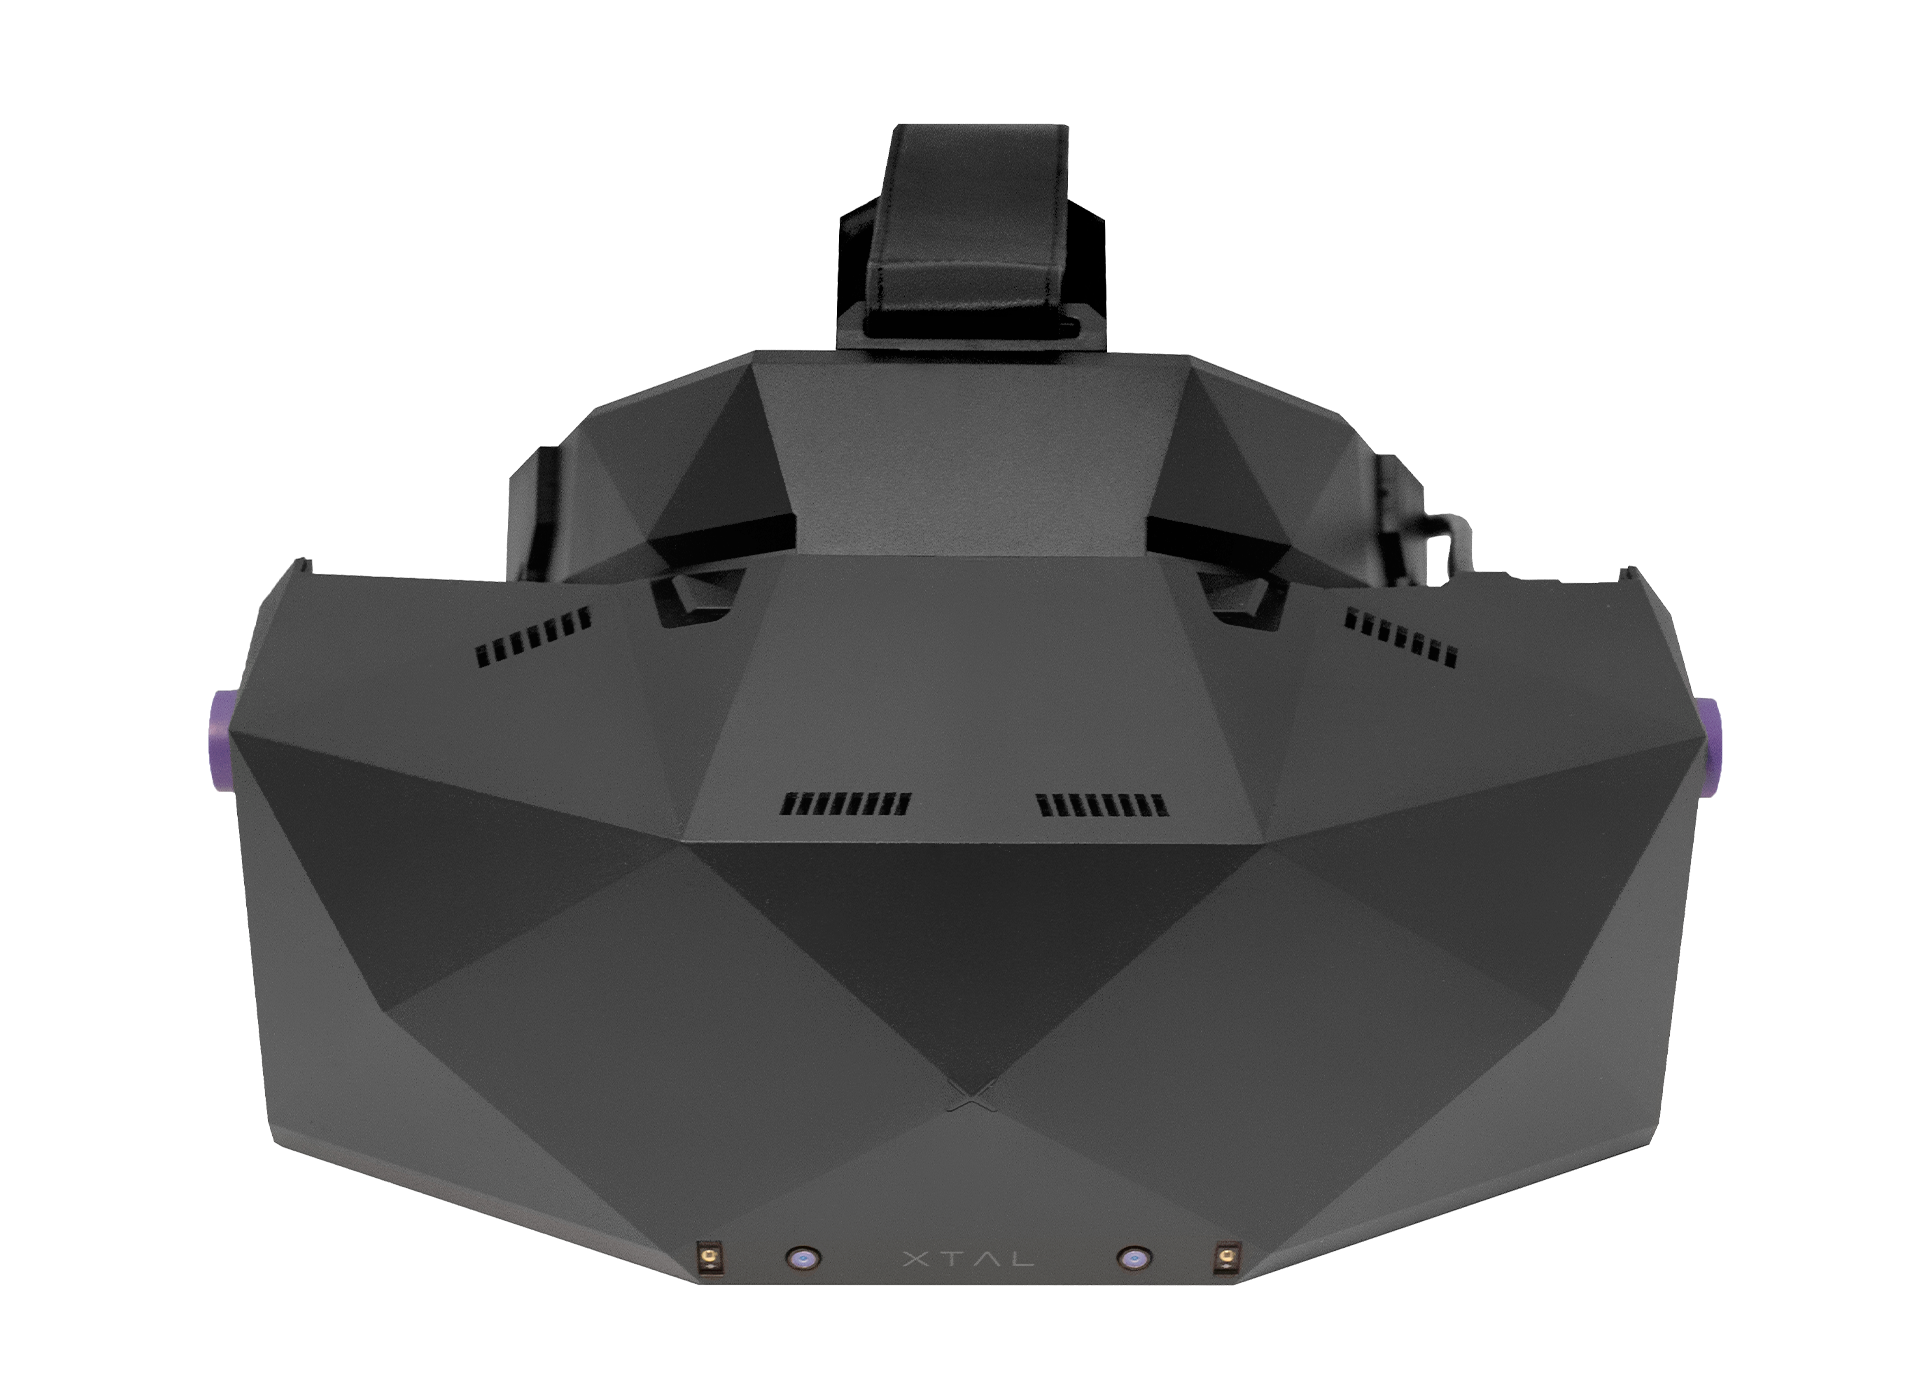 XTAL 8K professional VR headset front view without tracking